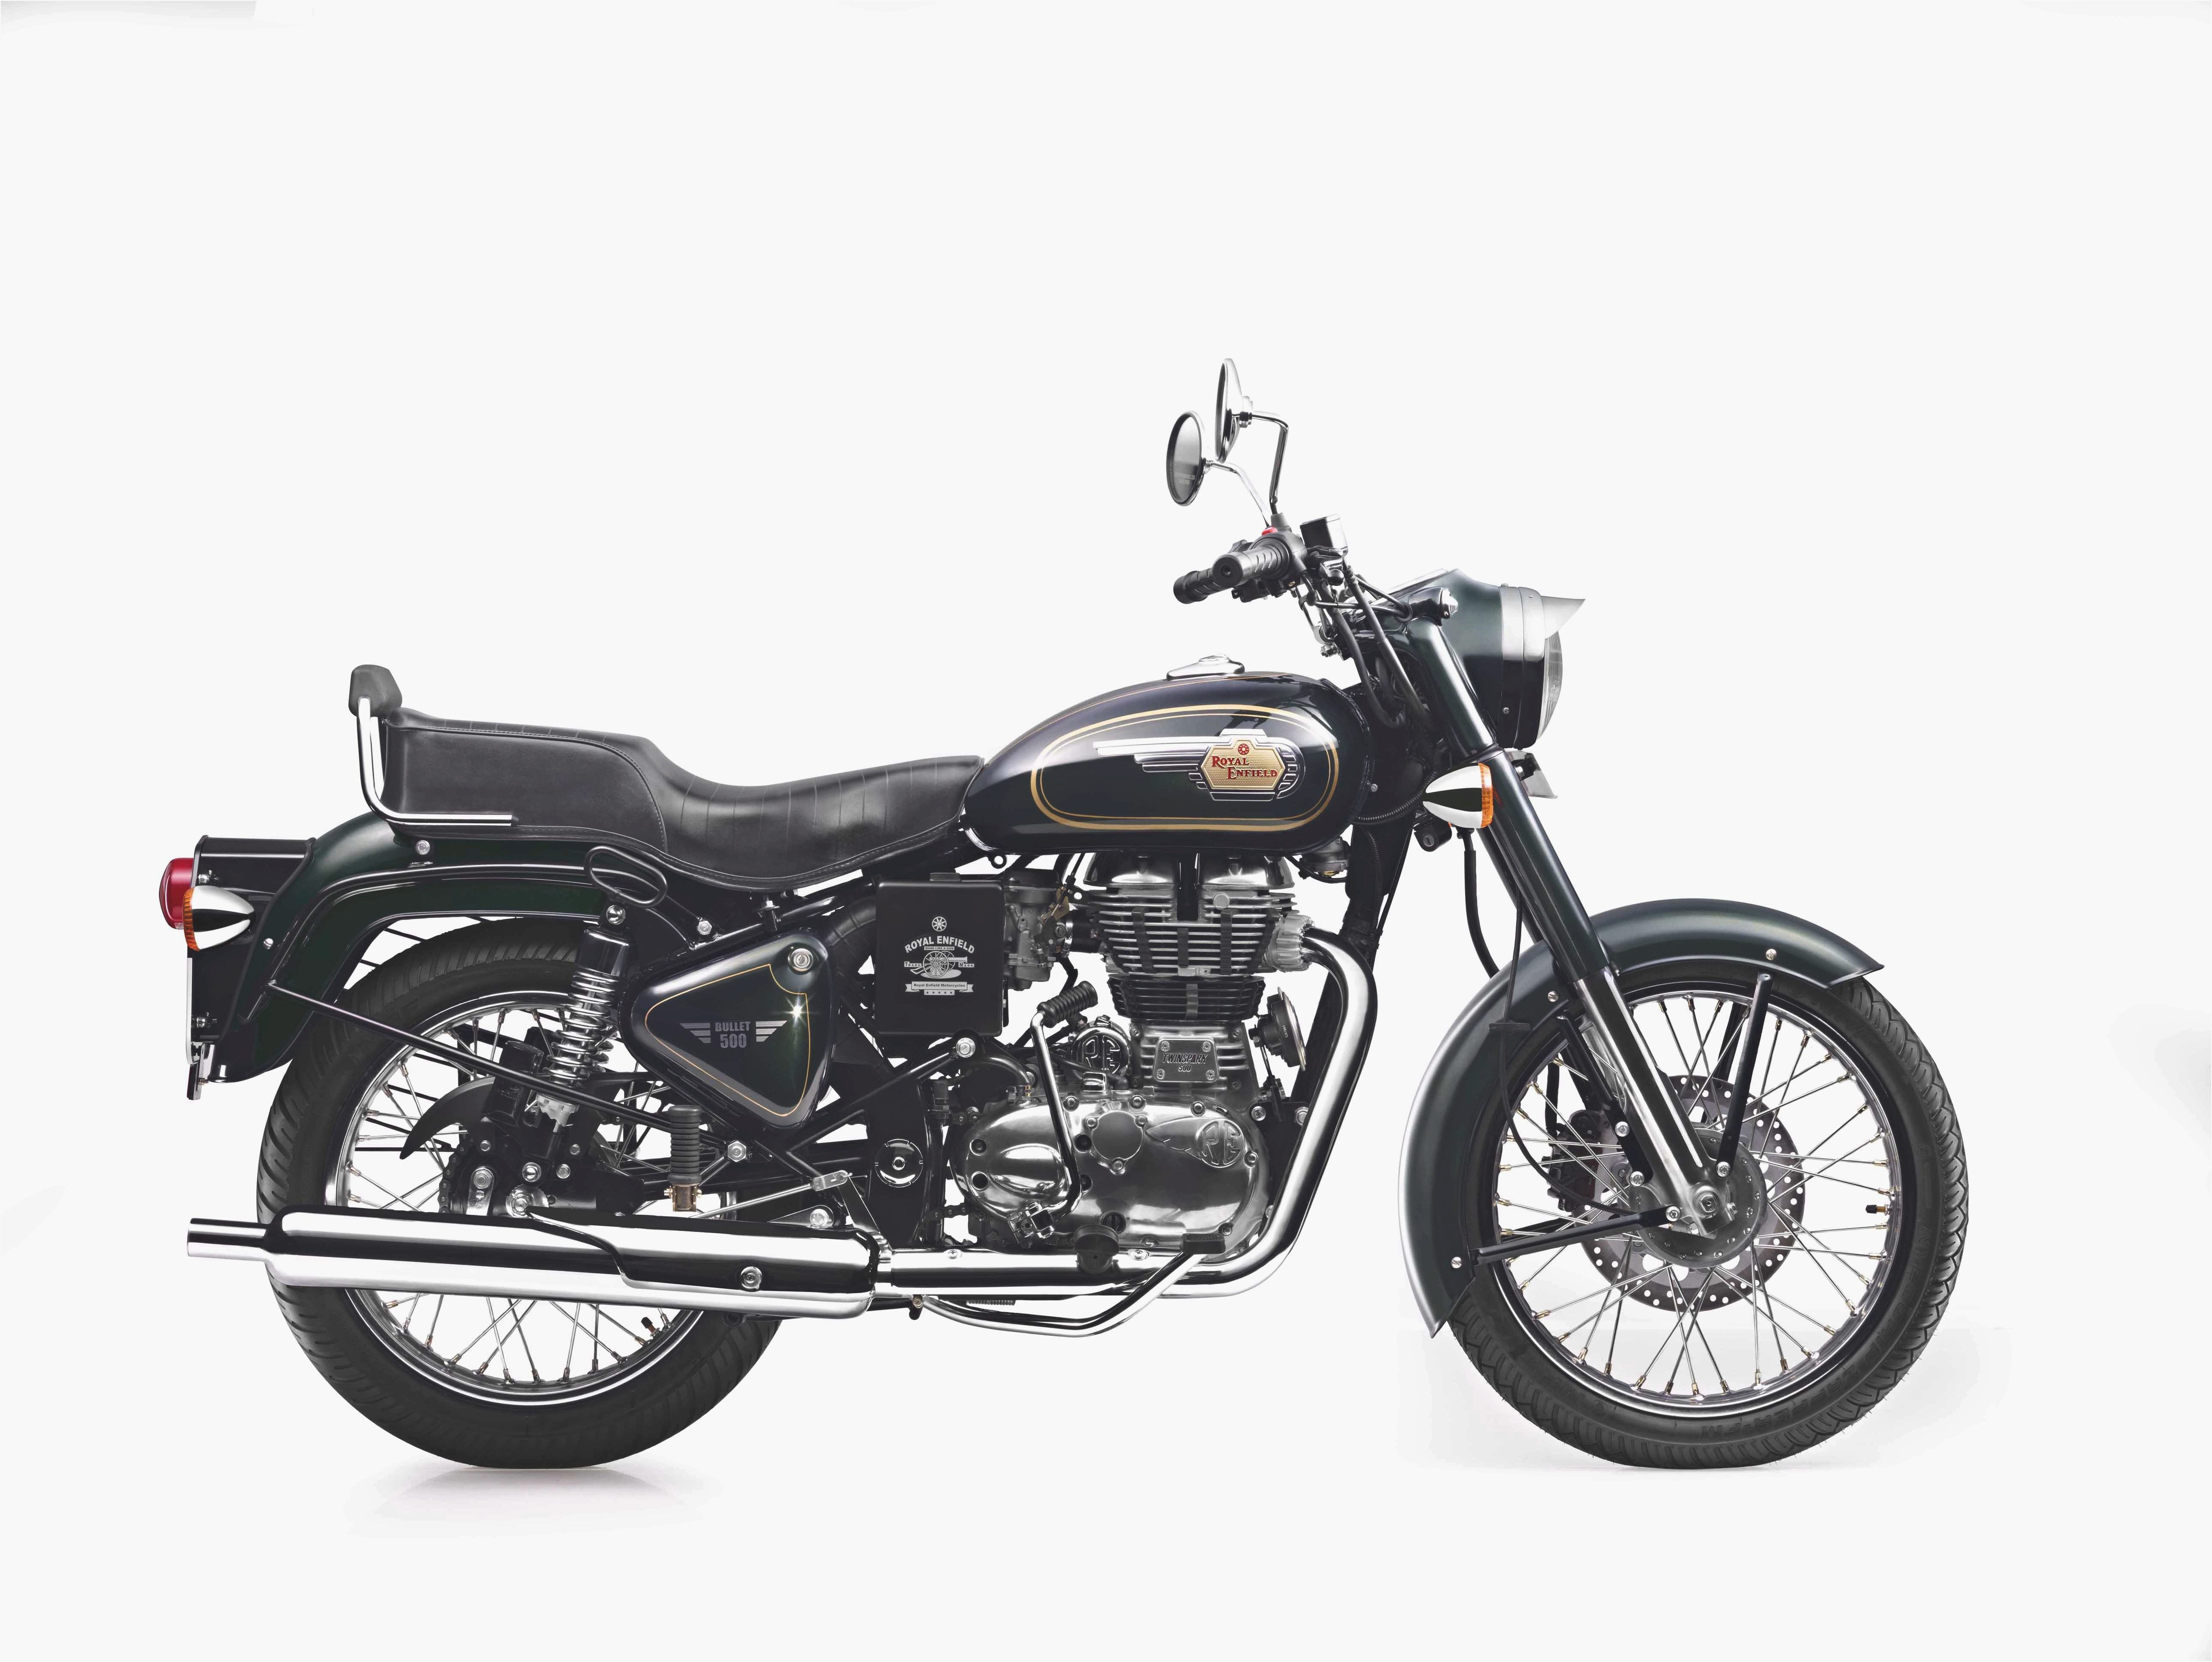 Royal Enfield Bullet 500 Deluxe AVL 2010 images #124044